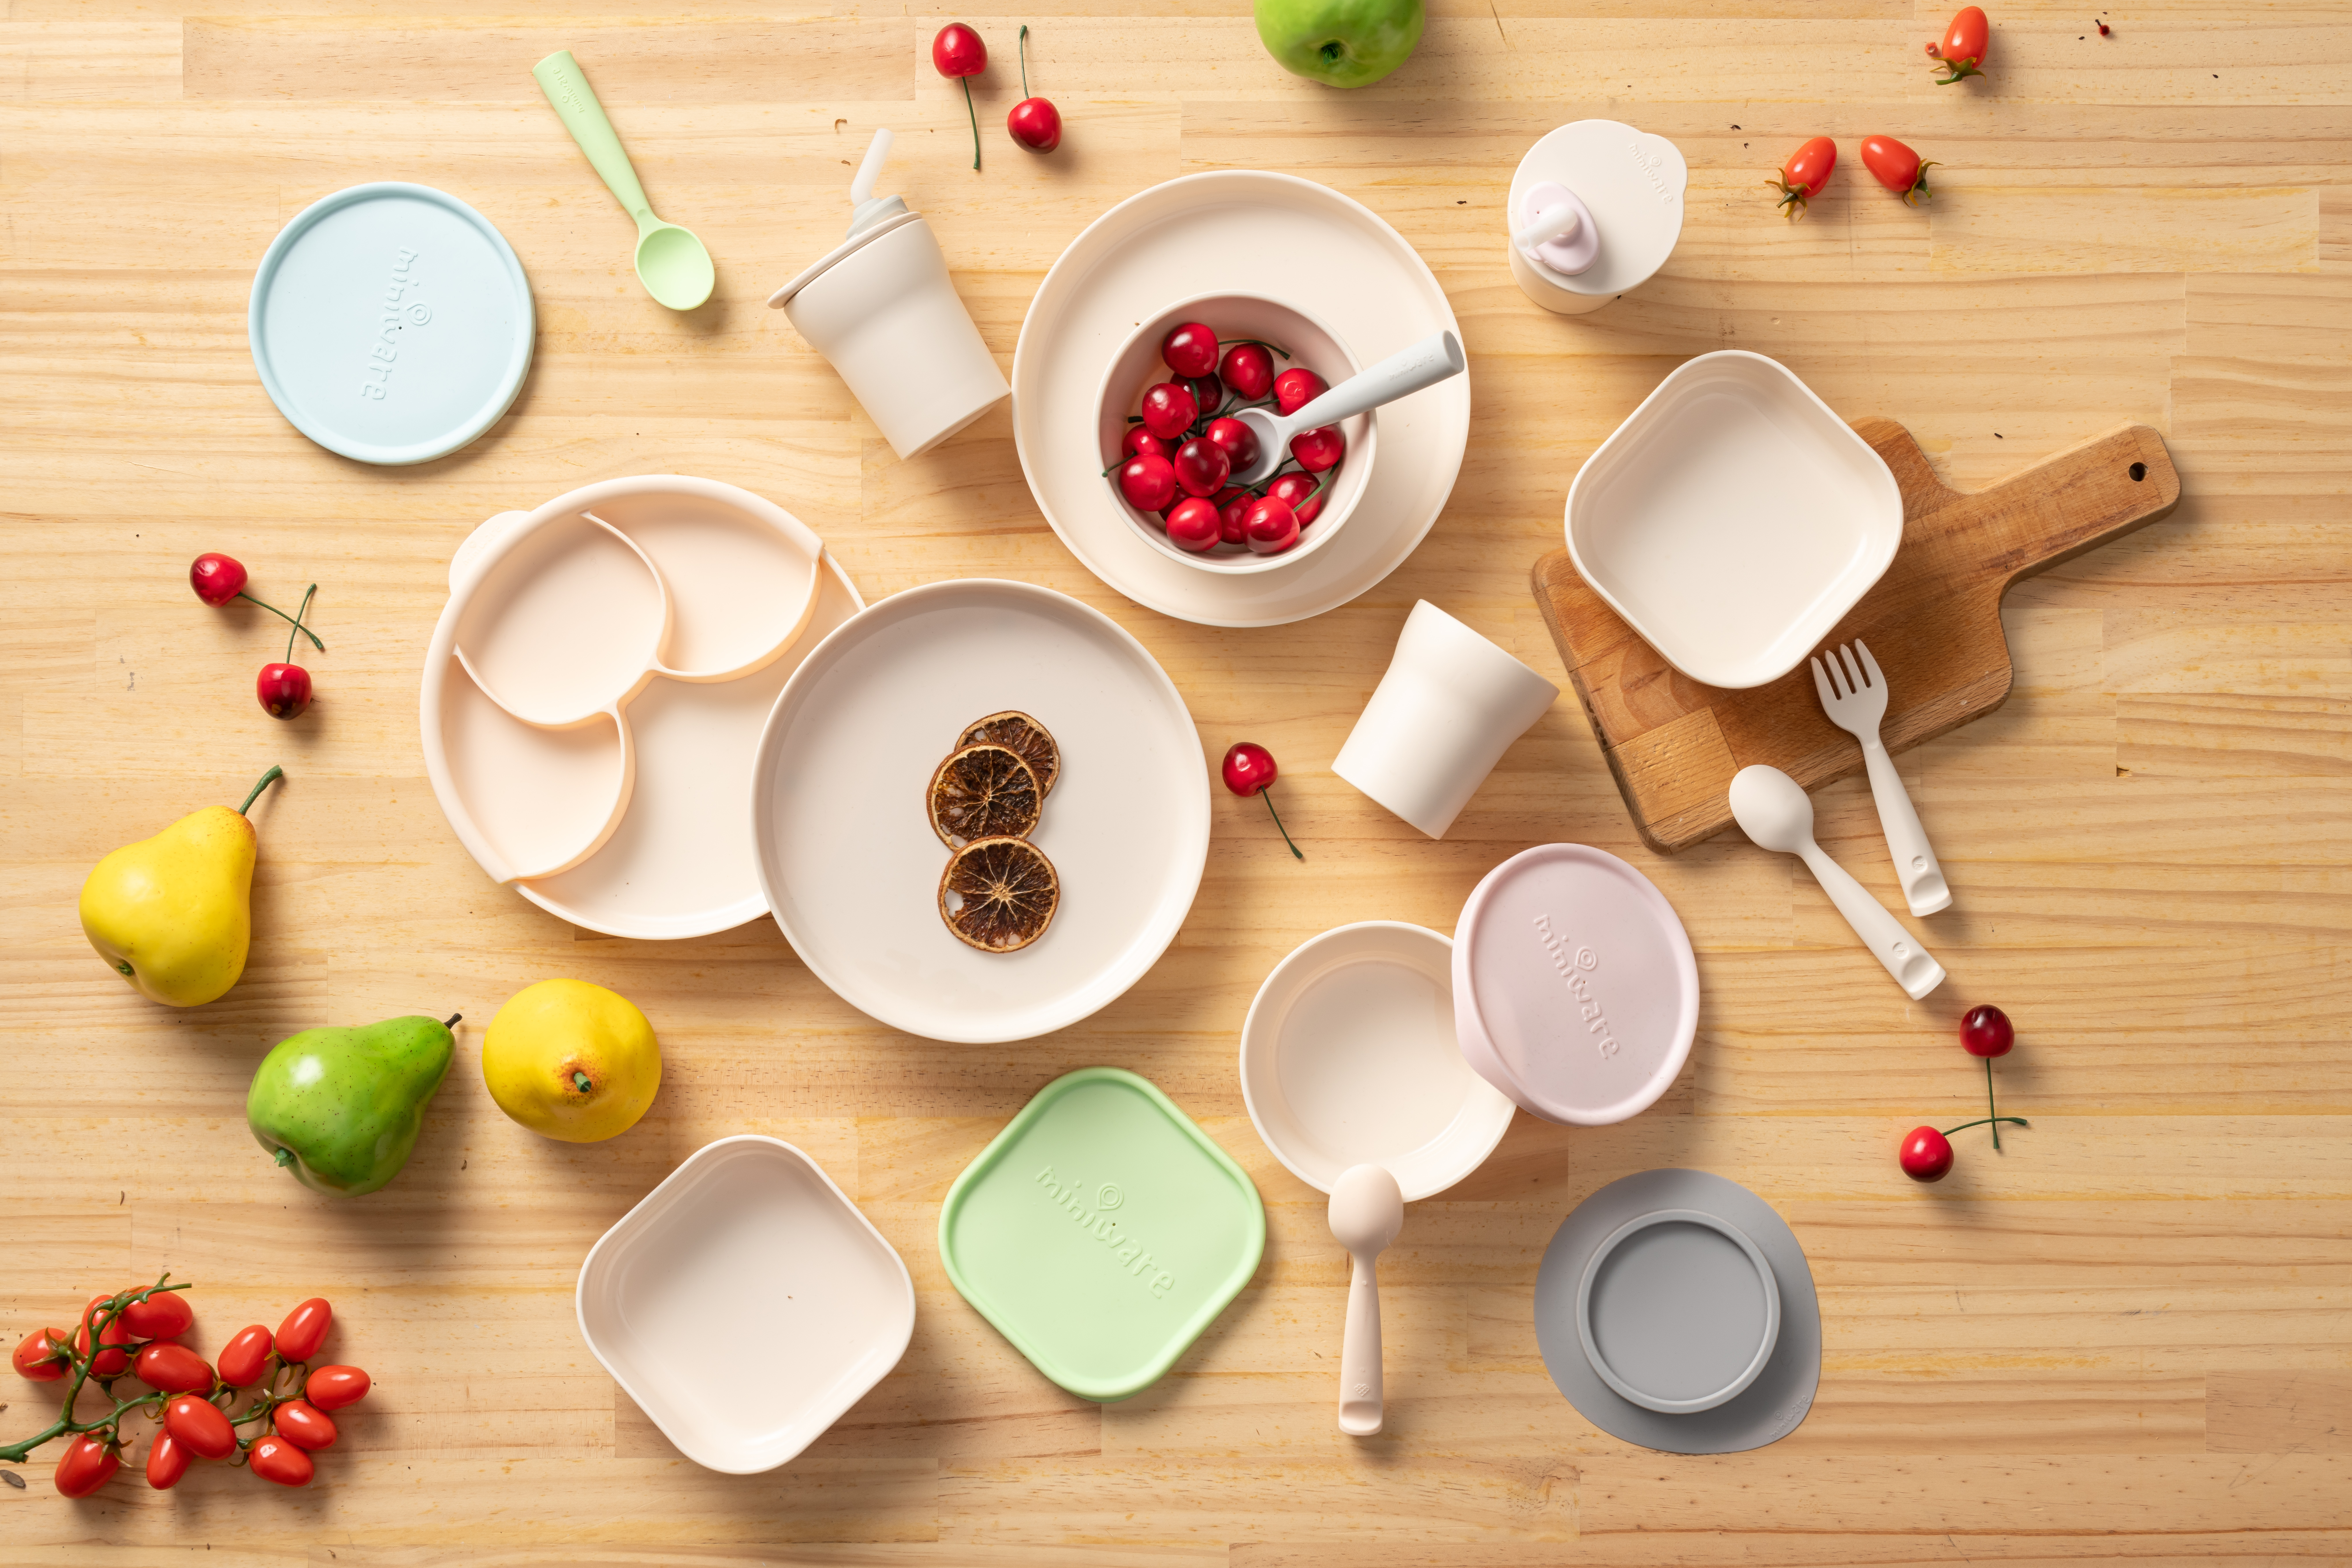 Miniware Baby Products are Free of Melamine and Formaldehyde